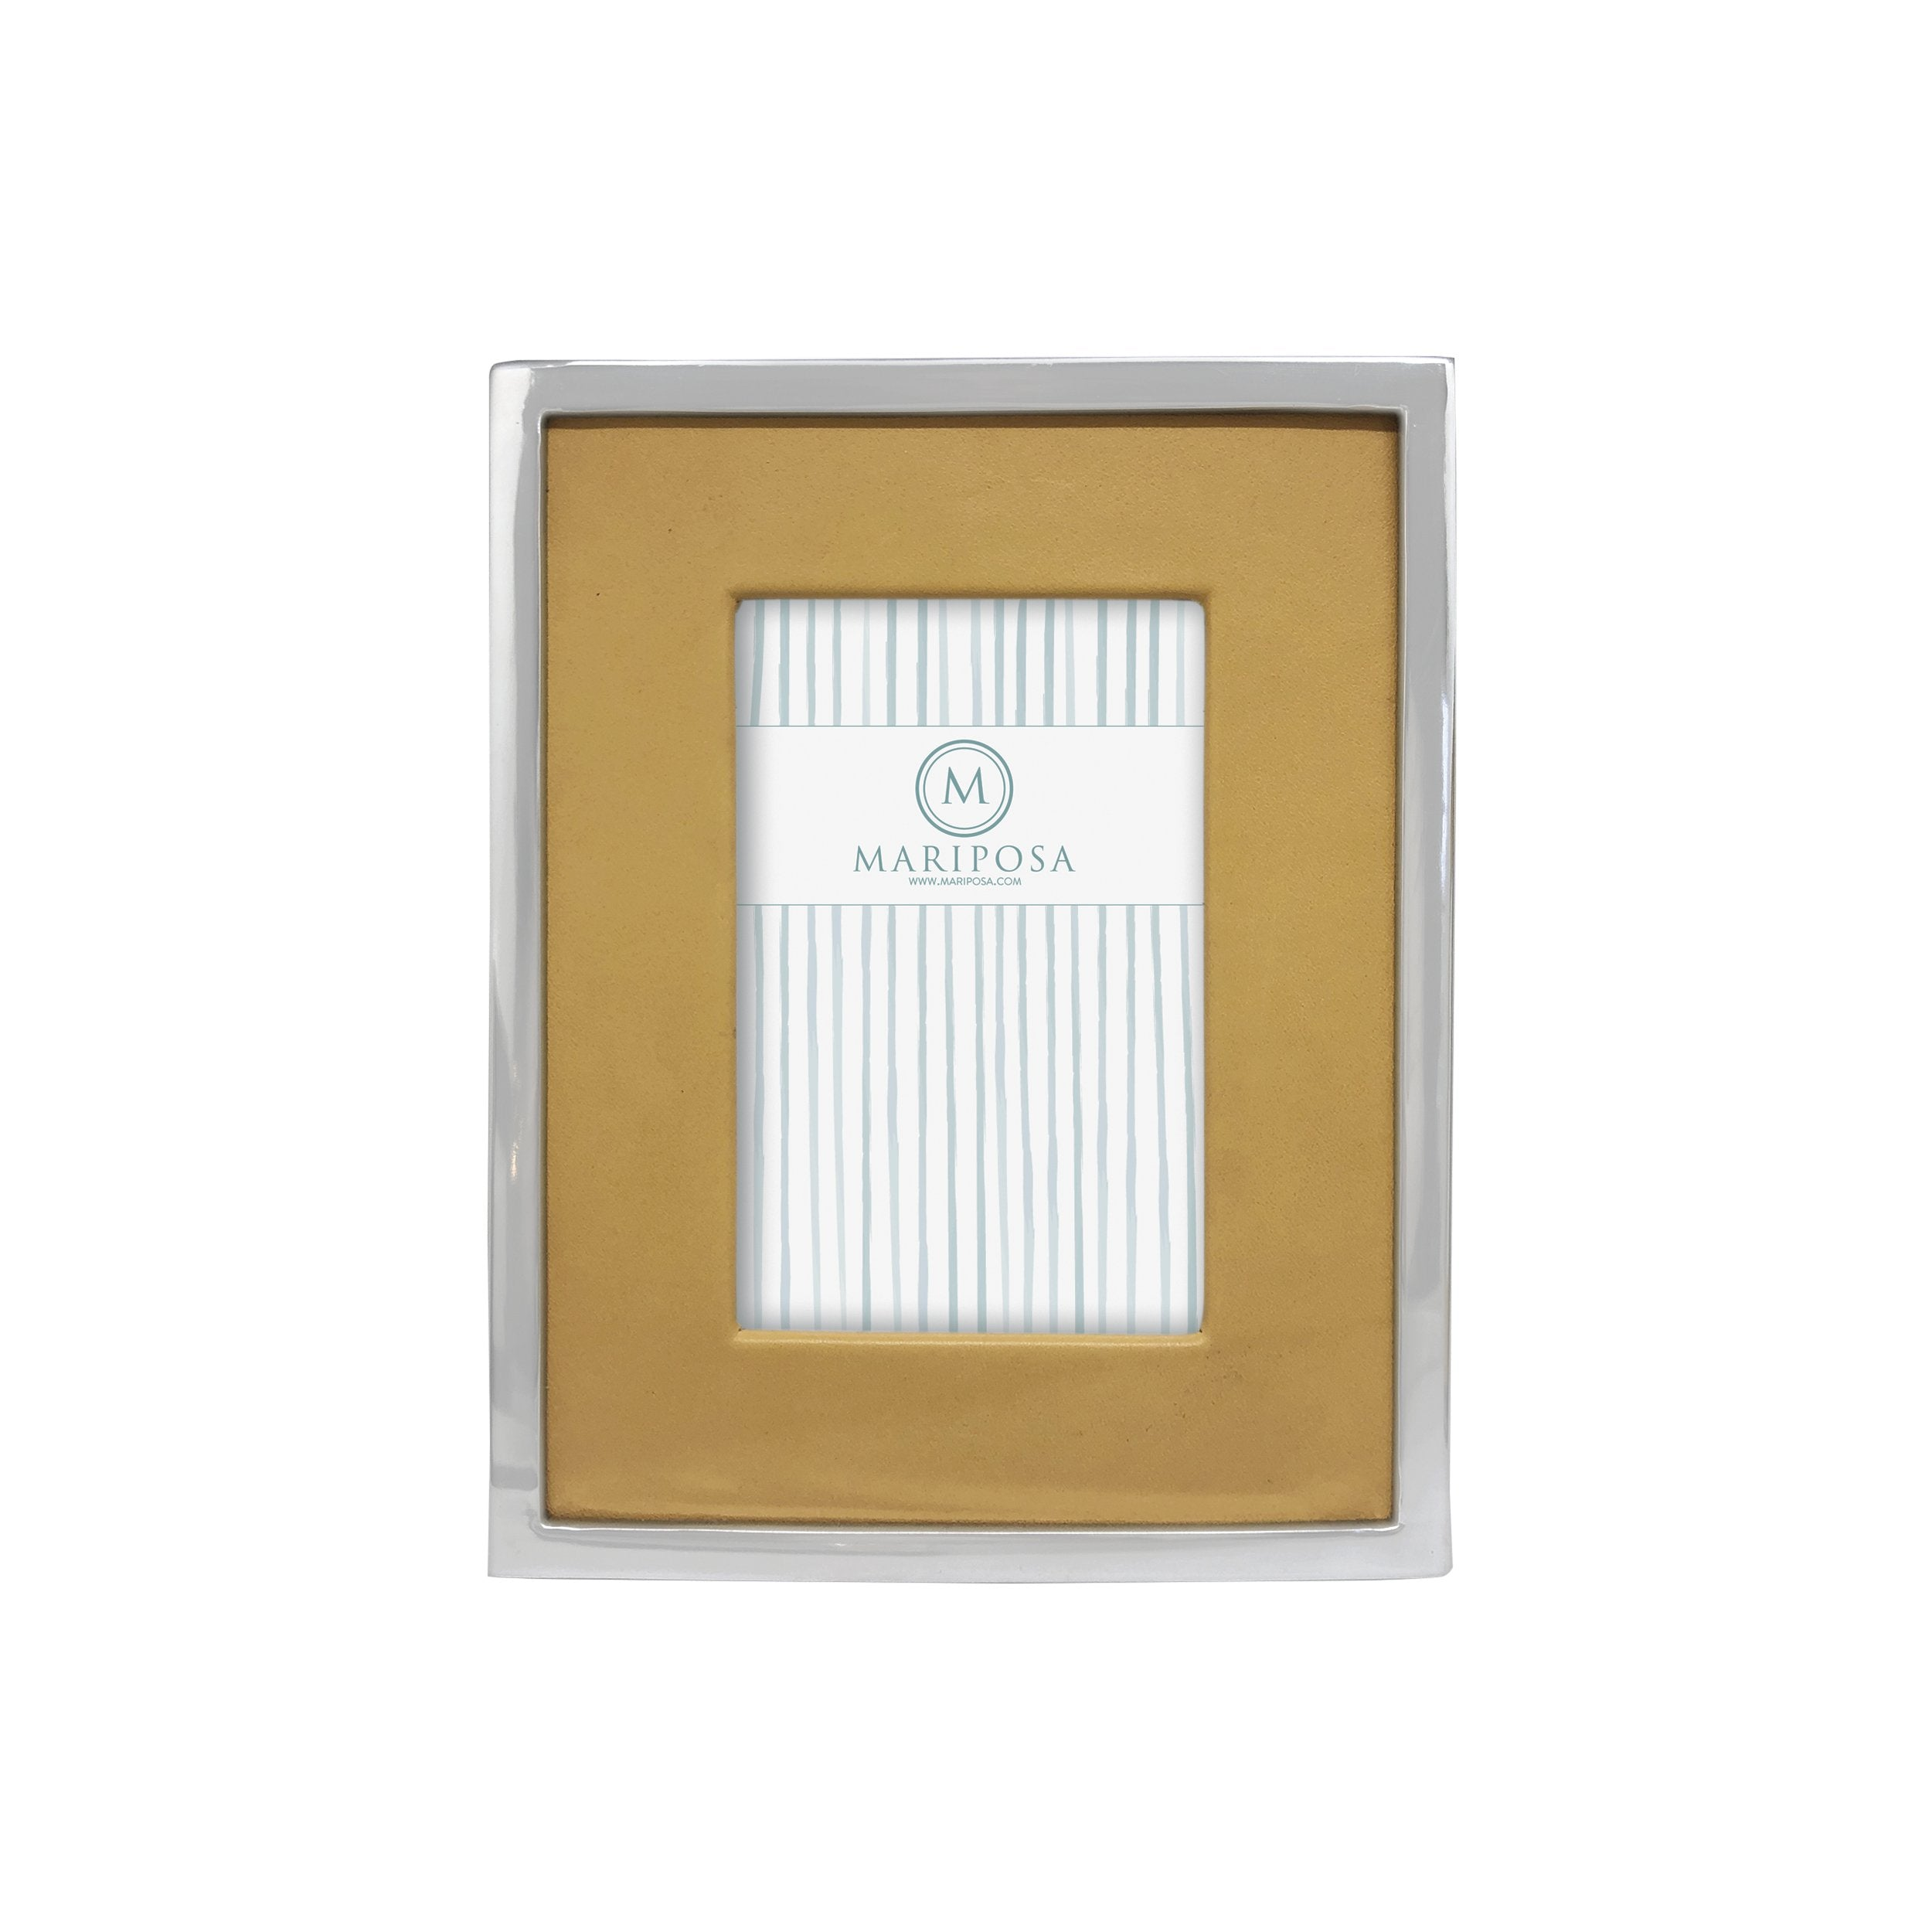 Honeycomb Leather with Metal Border 4x6 Frame